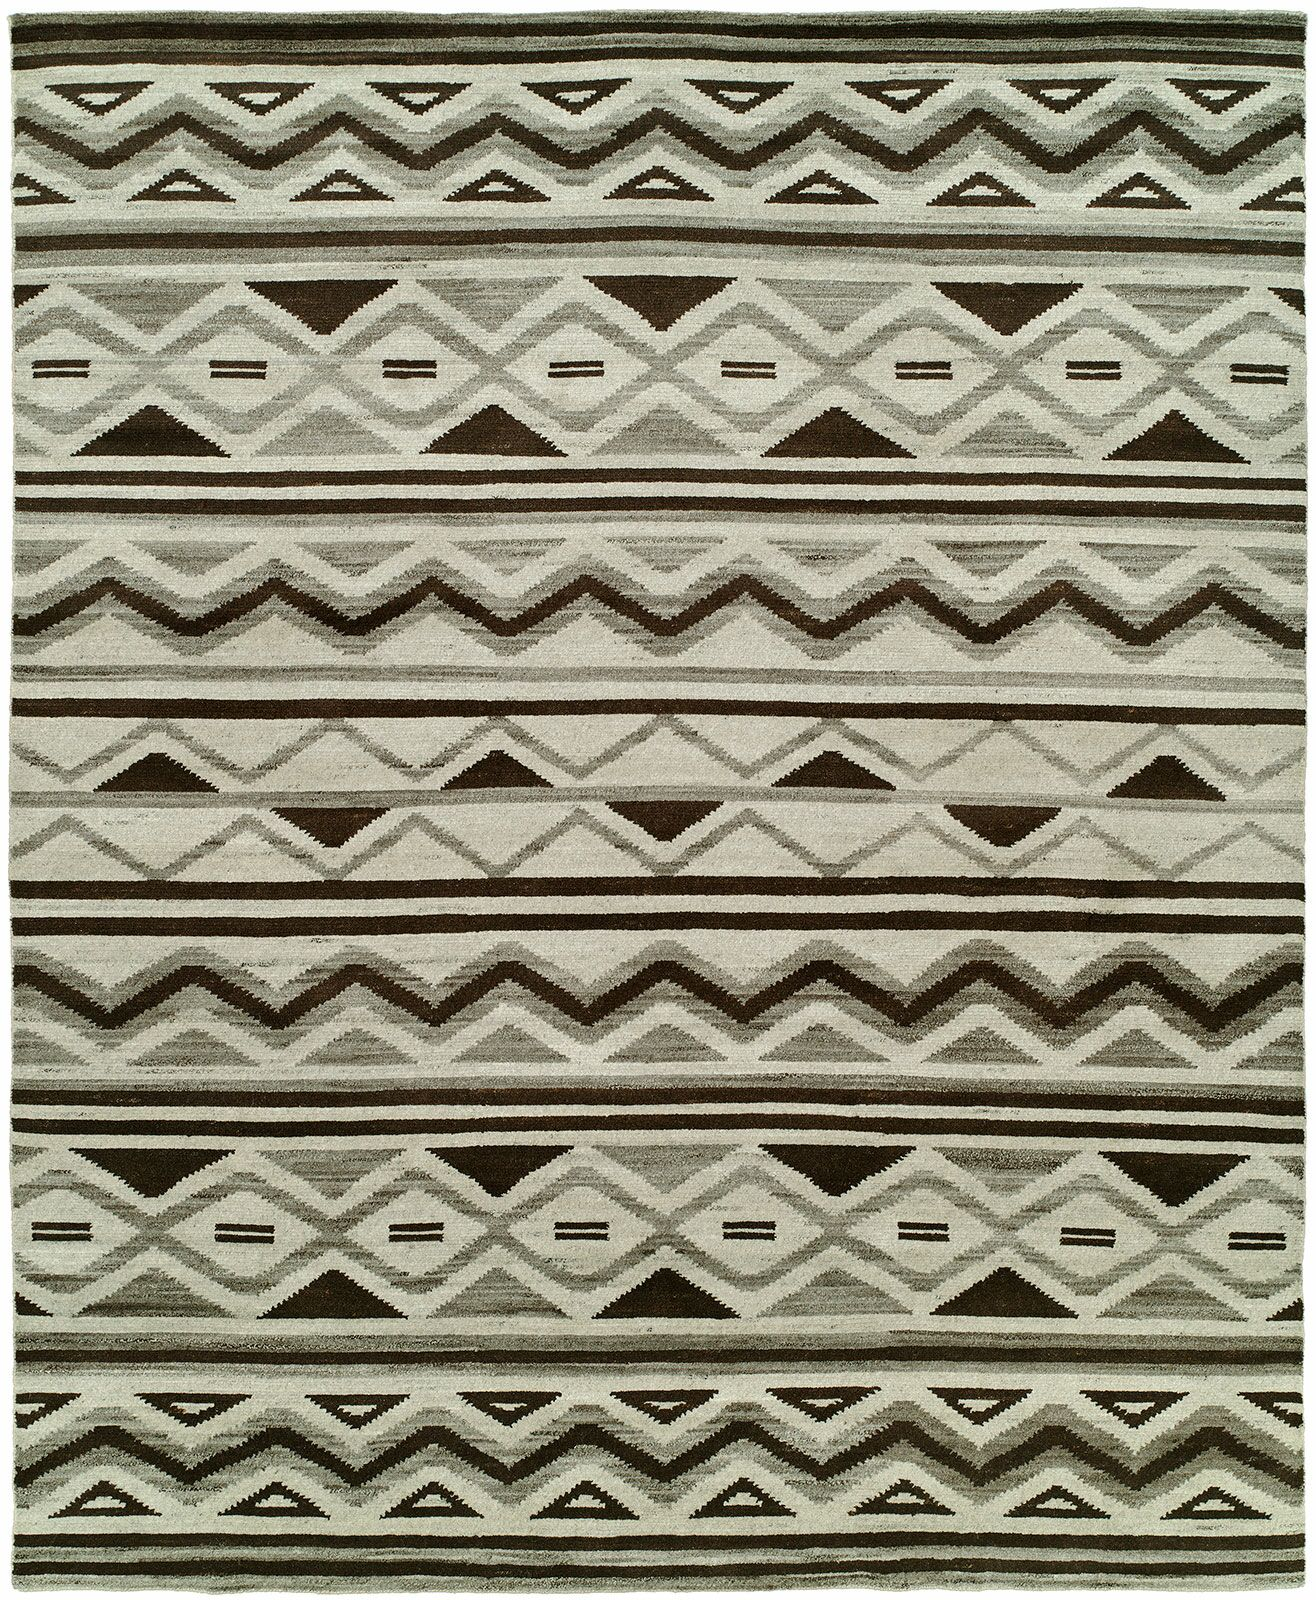 Raynham Hand-Knotted Wool Ivory Area Rug Rug Size: Rectangle 9' x 12'